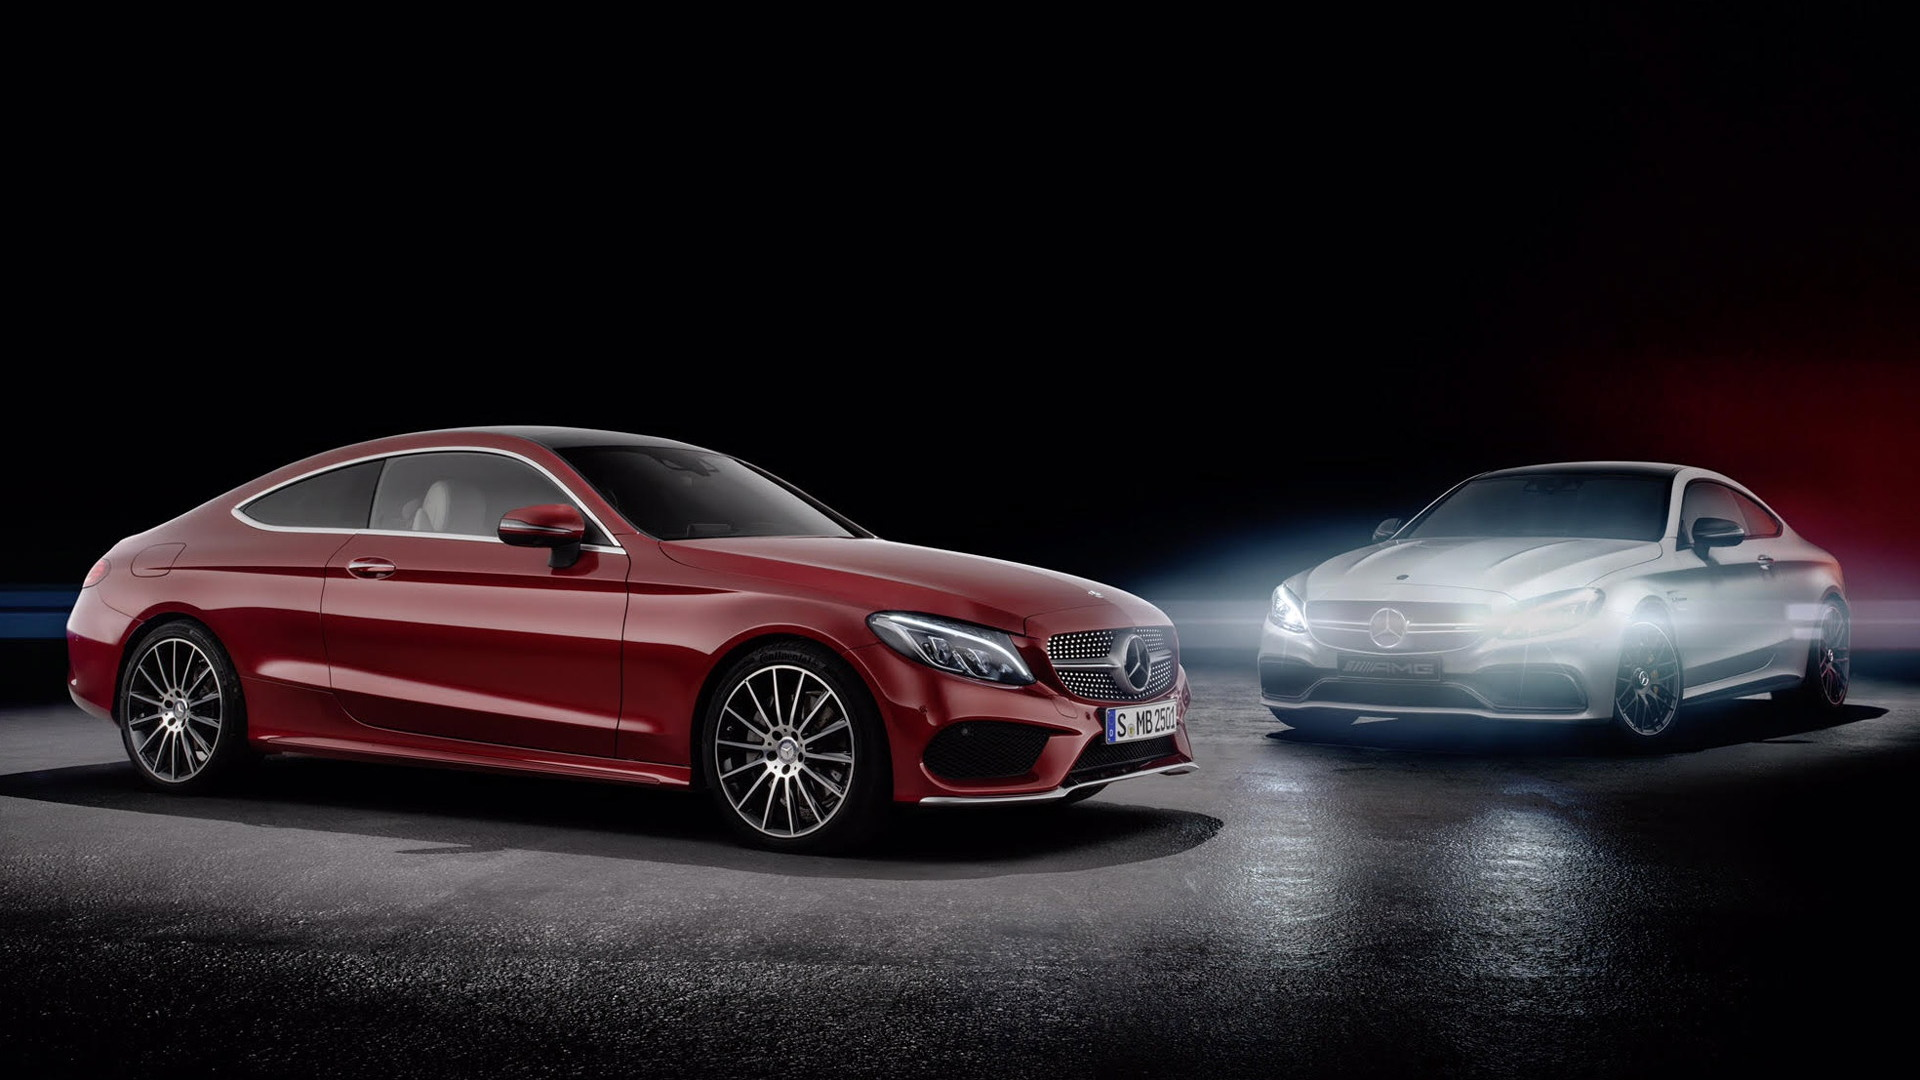 2017 Mercedes-Benz C-Class Coupe and Mercedes-AMG C63 Coupe